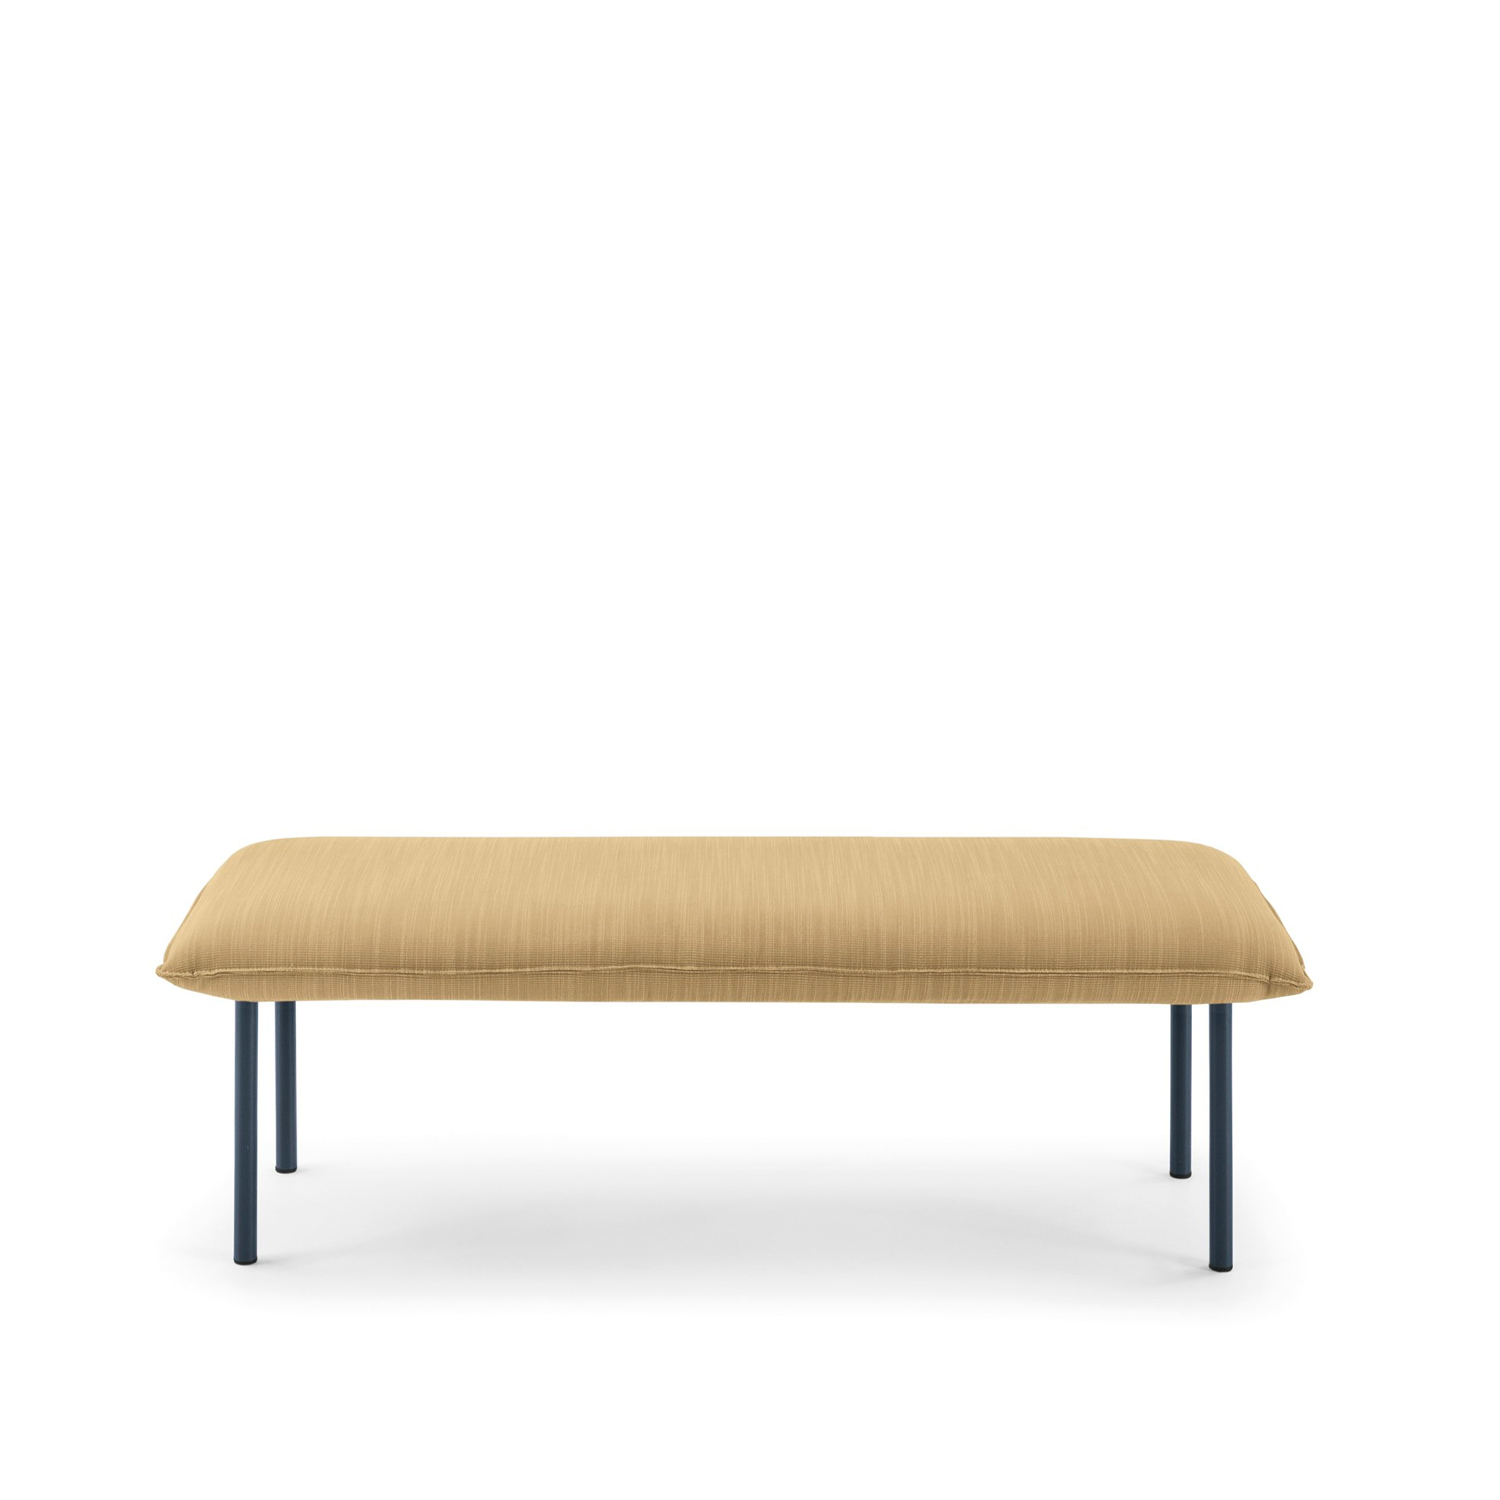 Jill Bench - The Jill padded bench with its refined and soft details approaches perfectly to the bed from which it draws inspiration. Available in the following finishings: lacquered ral 9010, 9011, 5008, 8019, 3005, 6020 e 7044.   Matter of Stuff